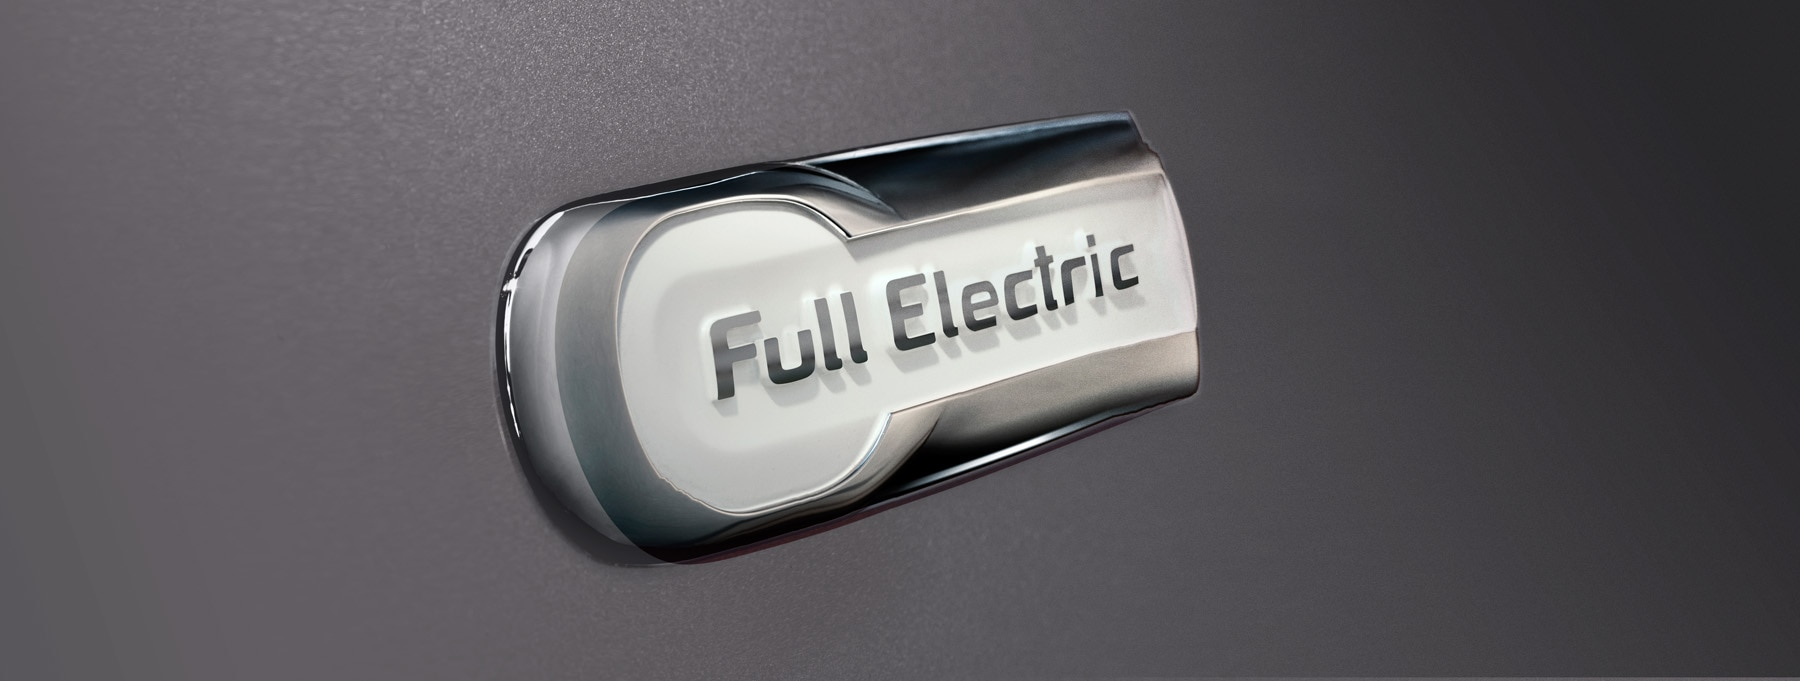 Engines - Full electric